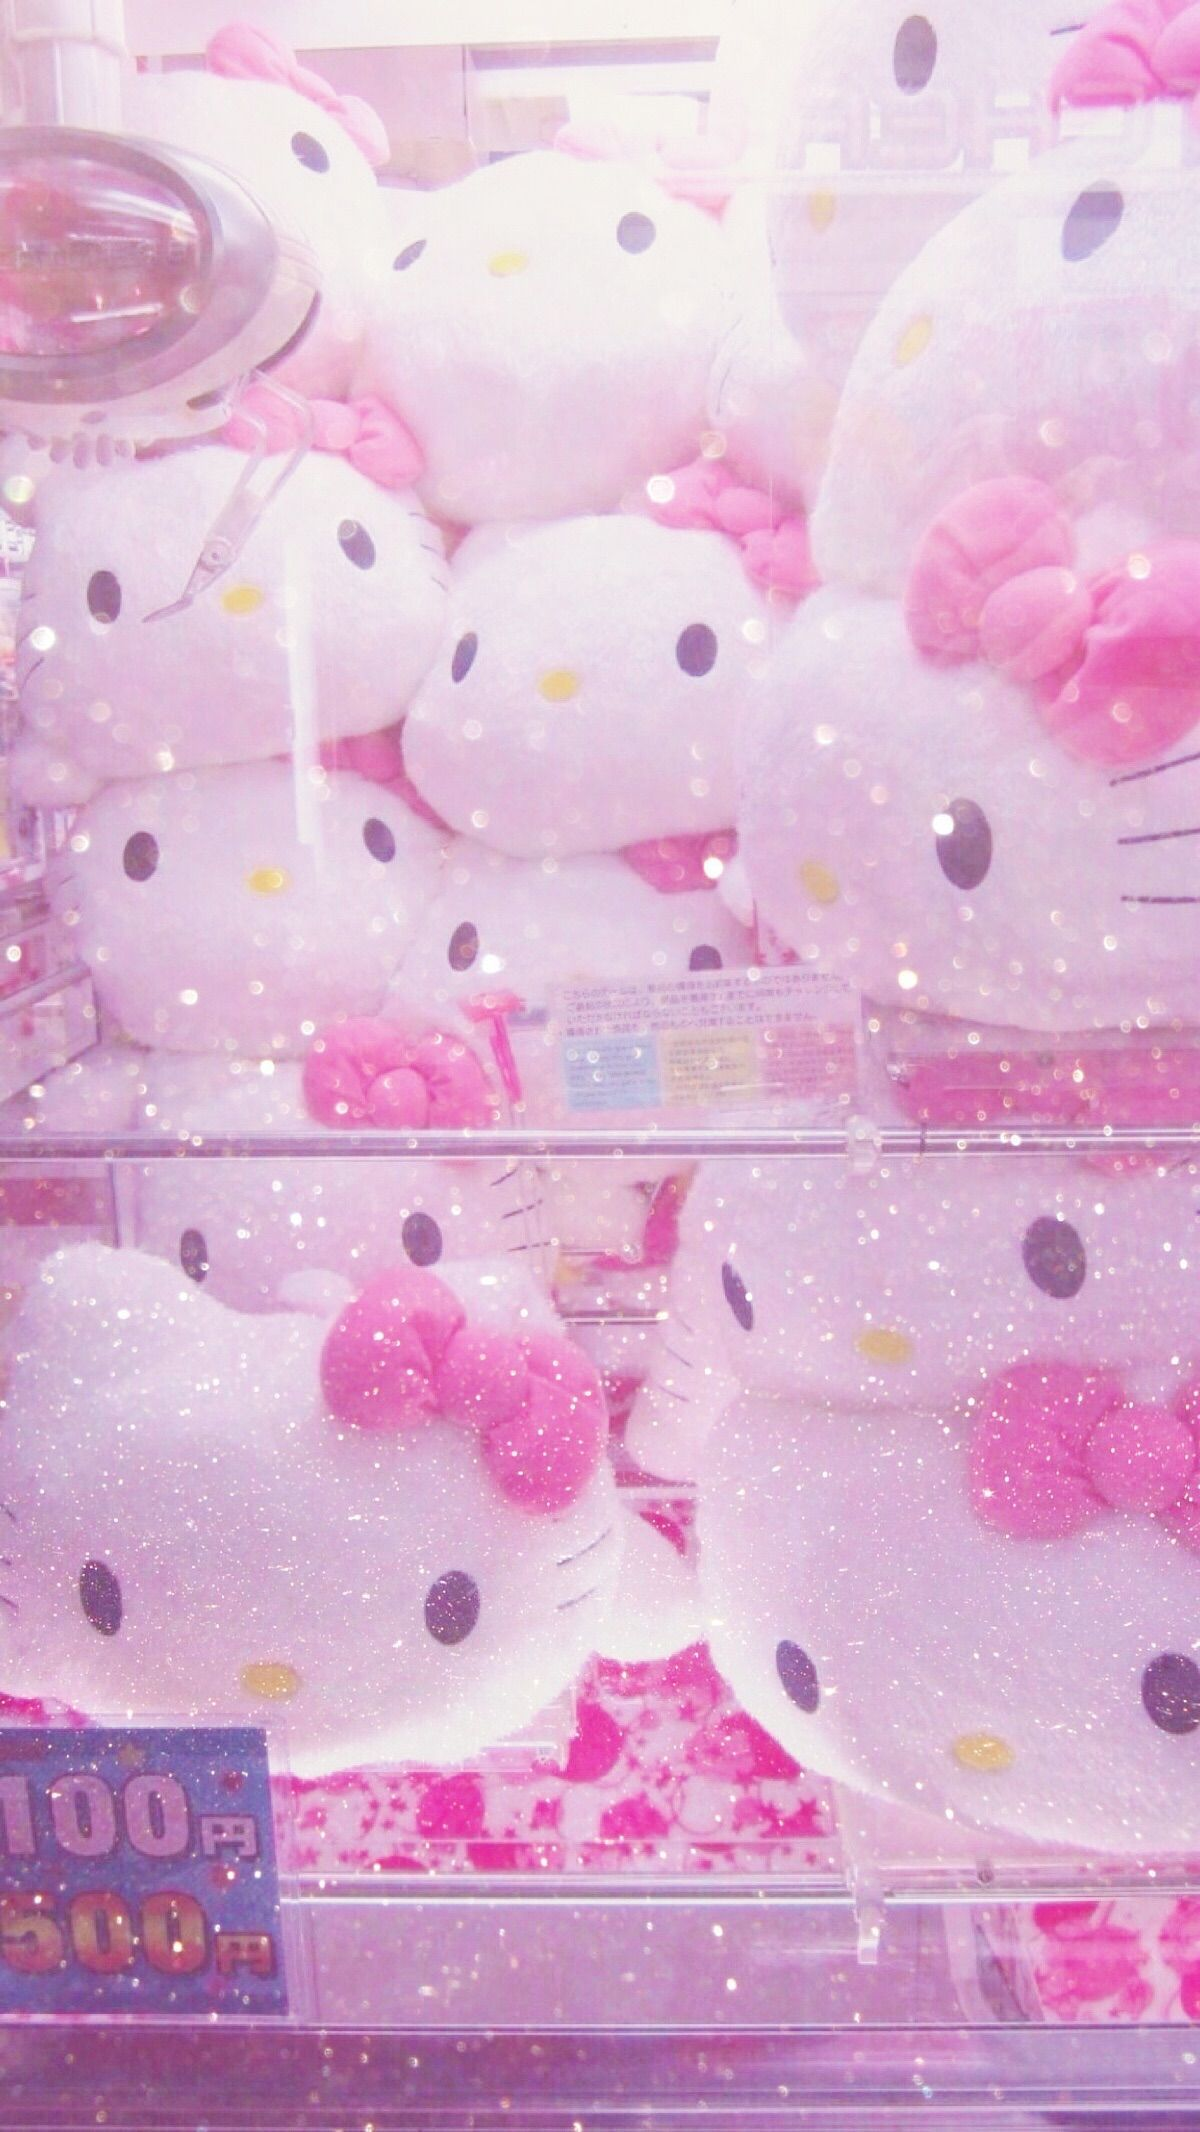 Hello Kitty Aesthetic Wallpapers Top Free Hello Kitty Aesthetic Backgrounds Wallpaperaccess